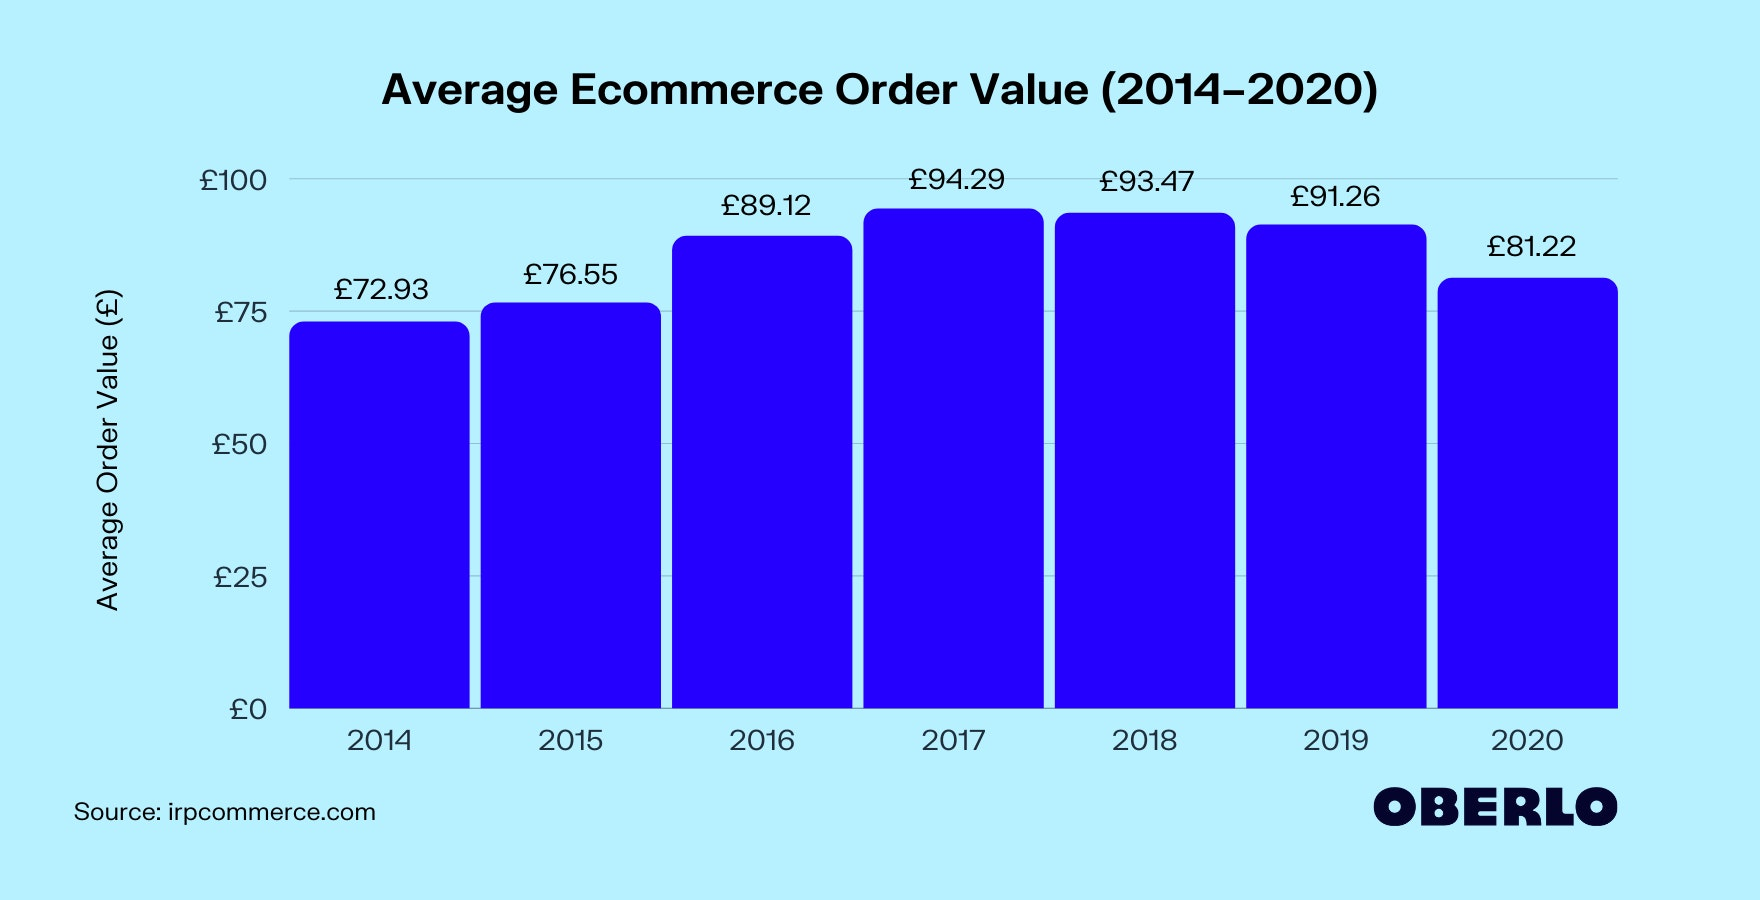 Average Order Value in Ecommerce